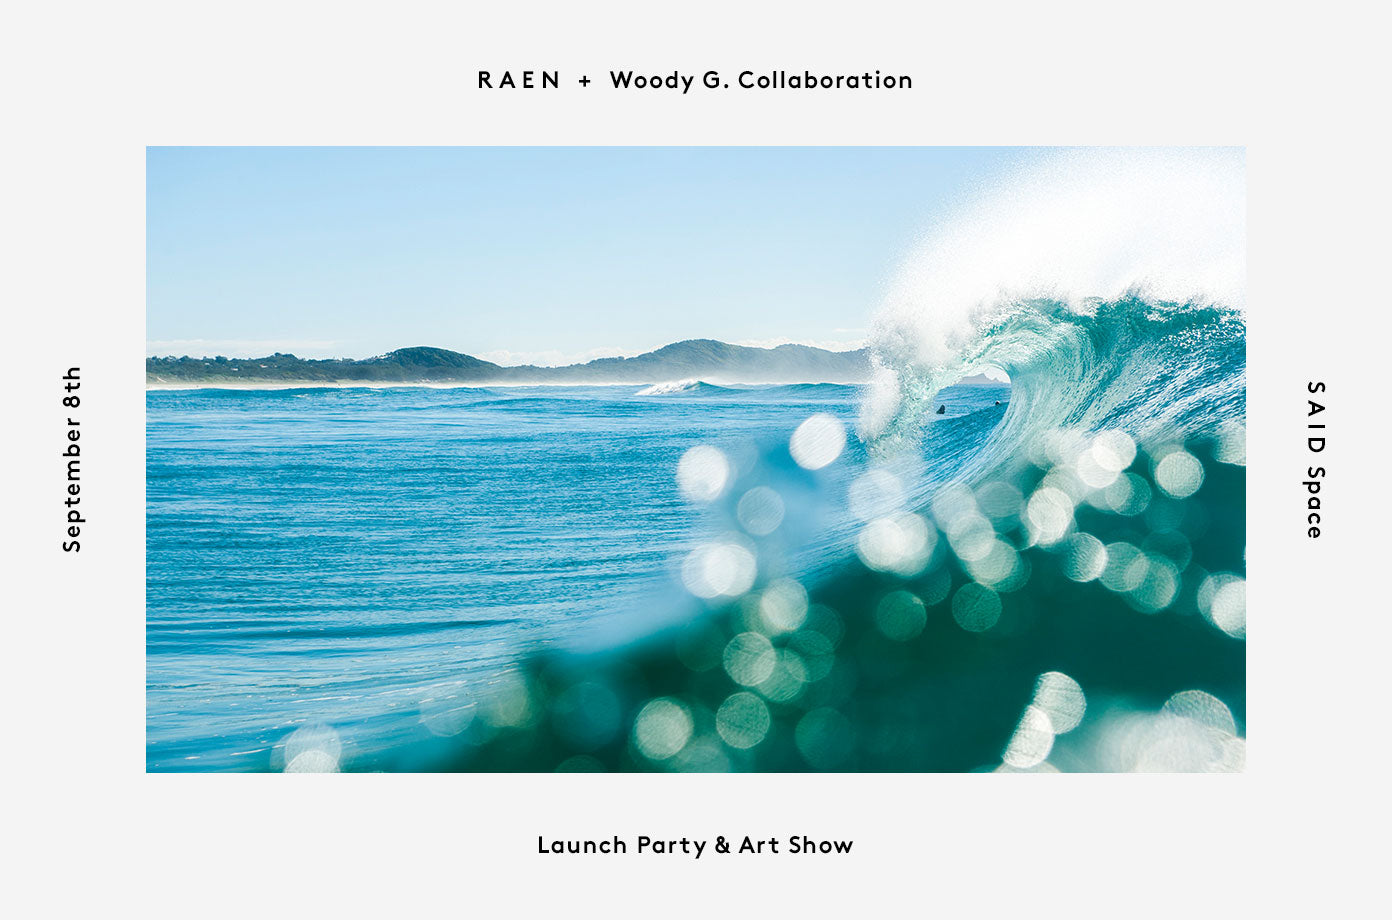 RAEN + Woody G. Collaboration Launch Party & Art Show